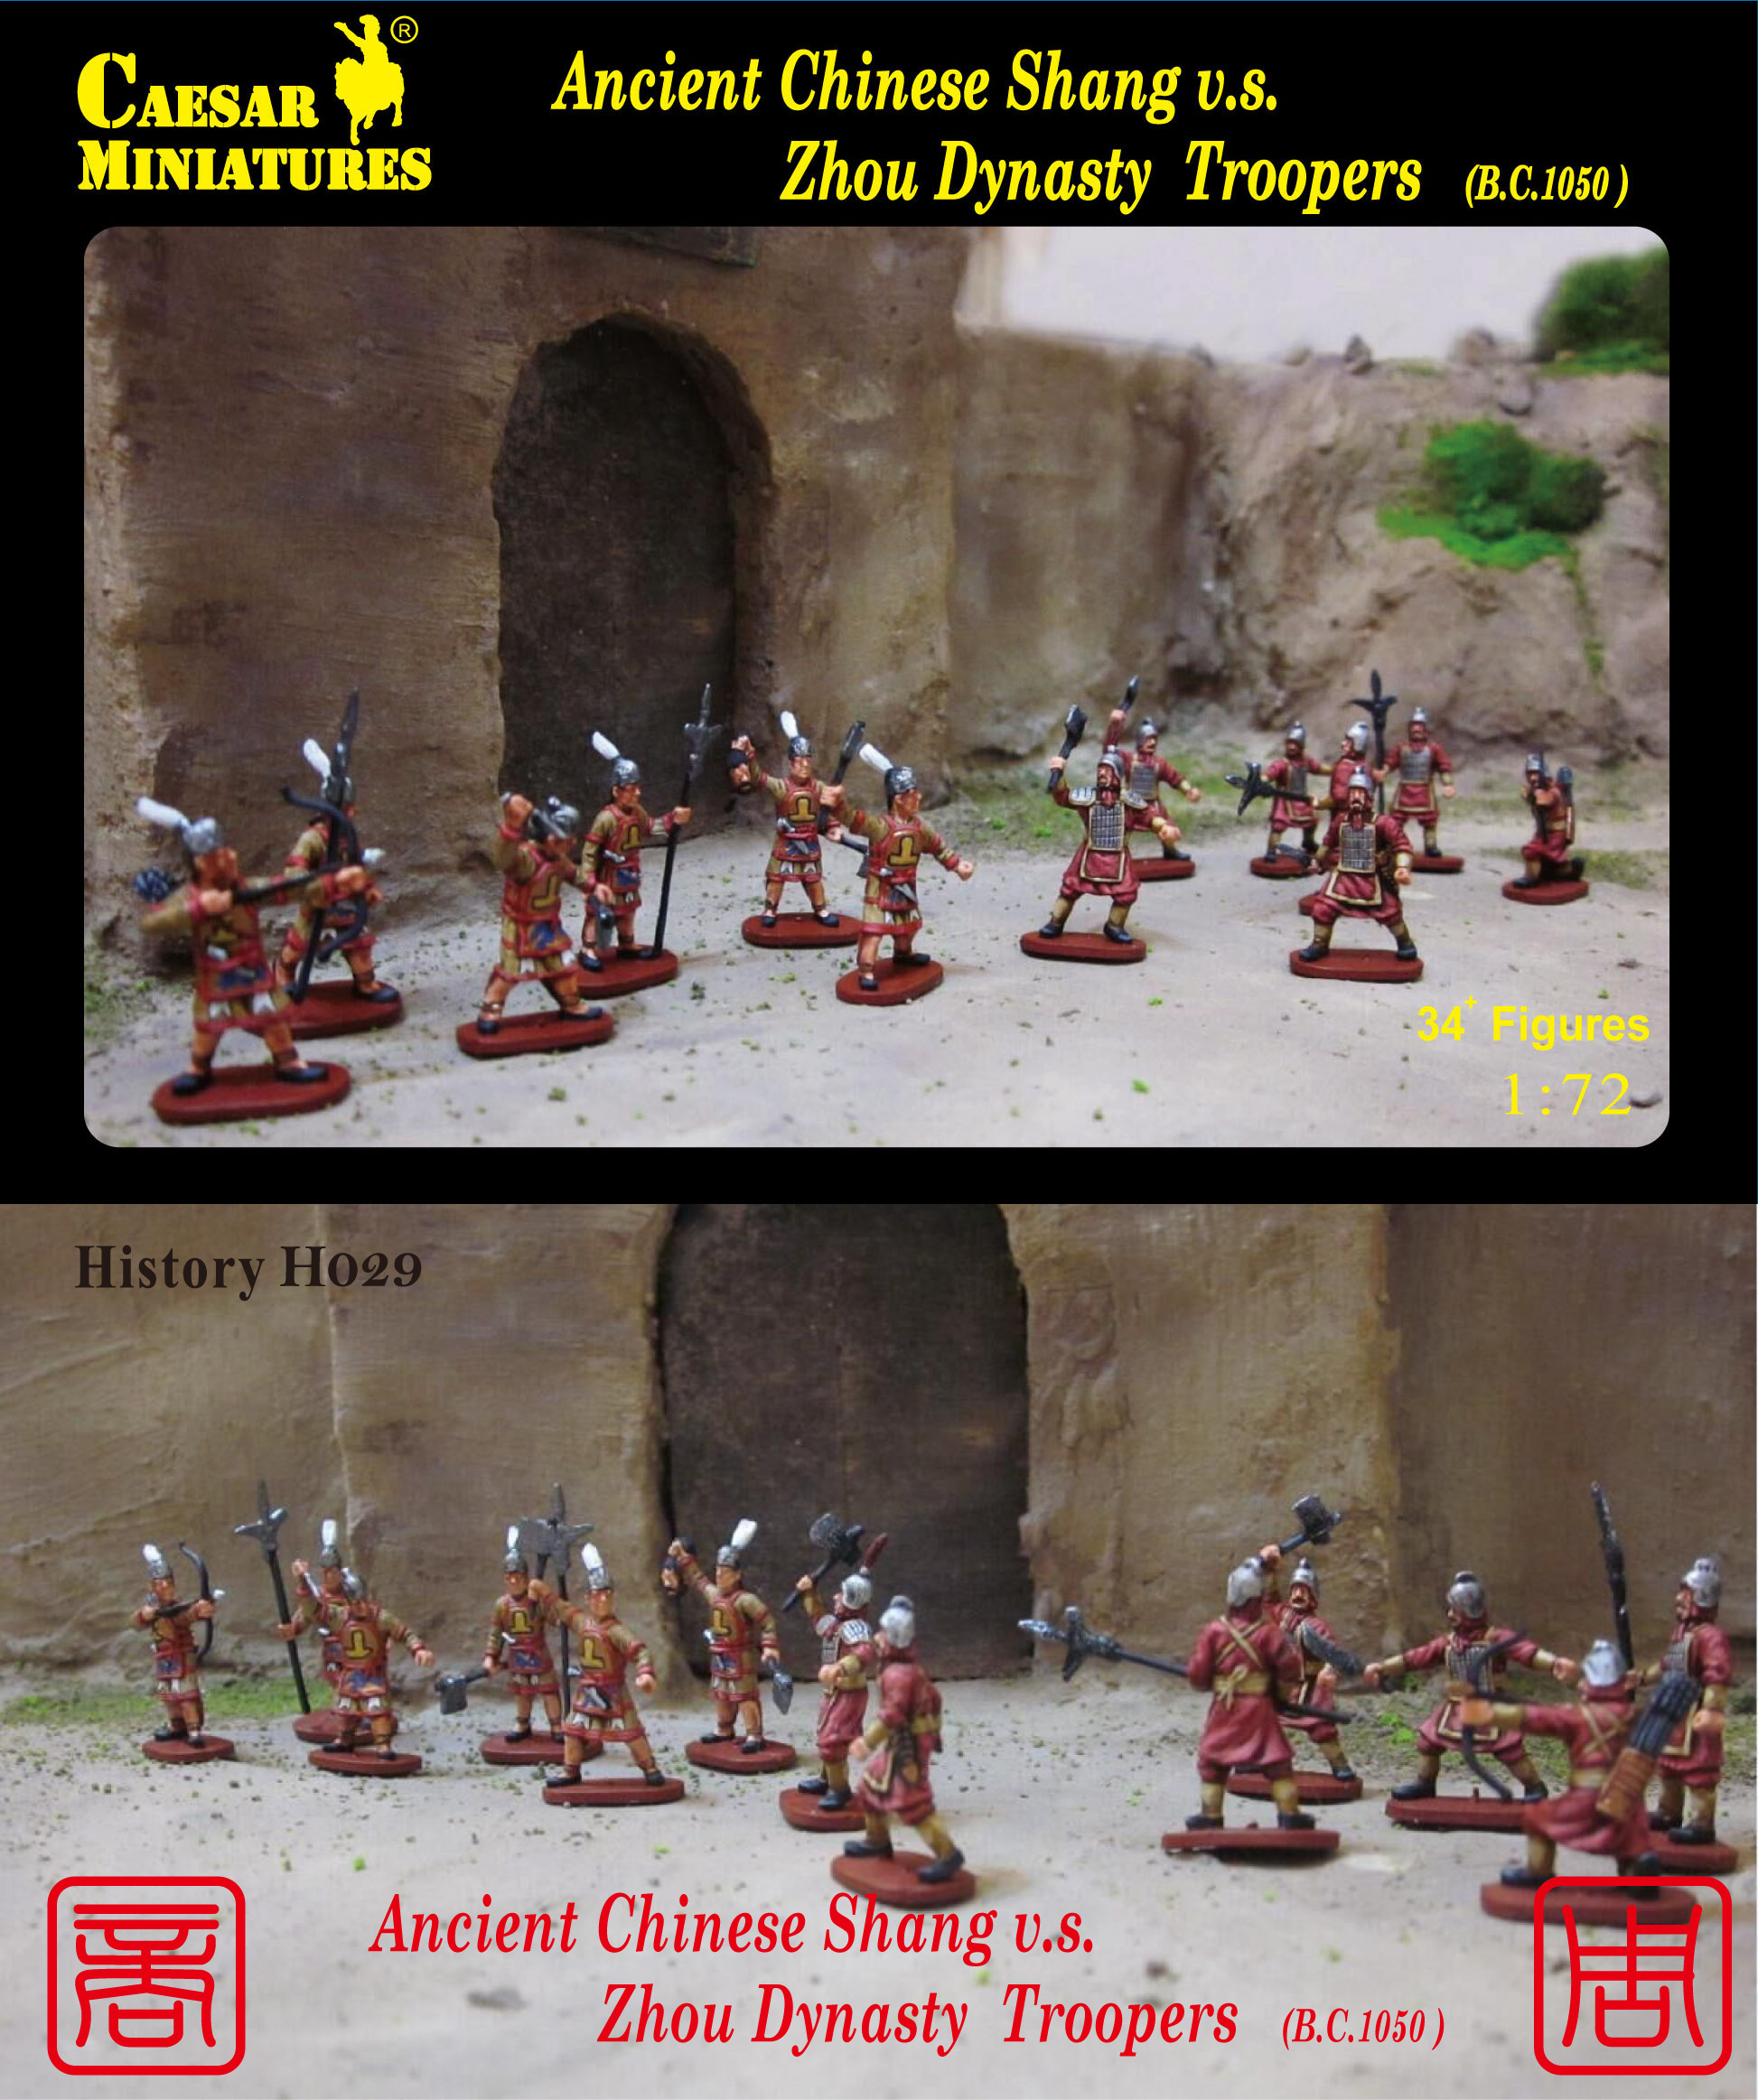 1/72 Ancient Chinese Shang v.s.Zhou Dynasty Troopers